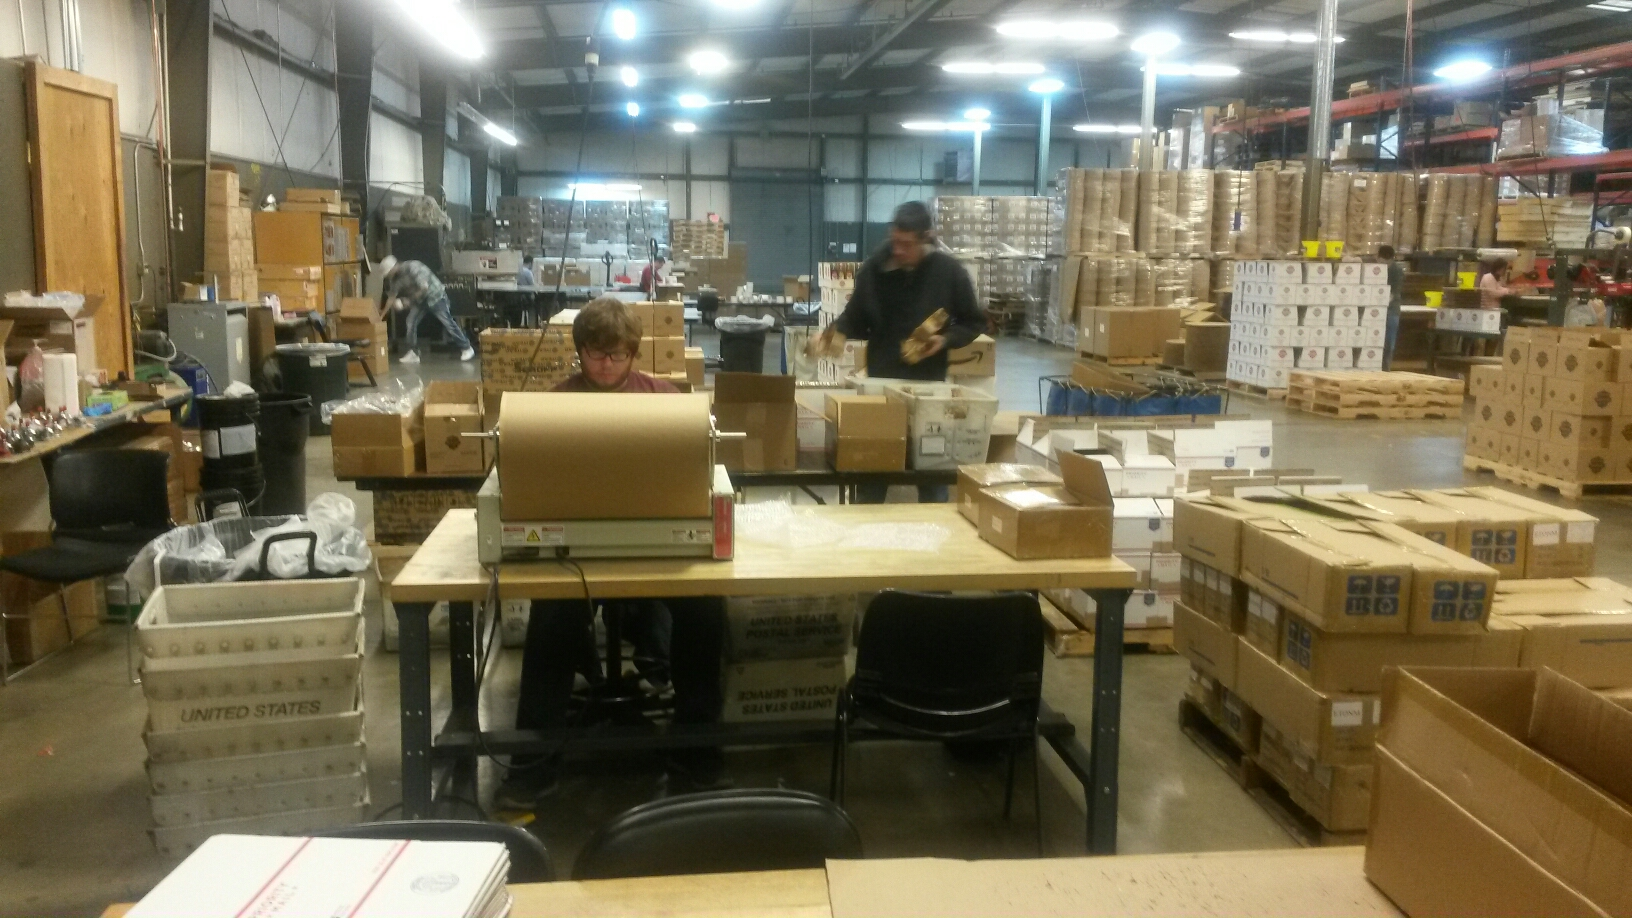 Sean packing boxes and Trevor wrapping the metal brackets